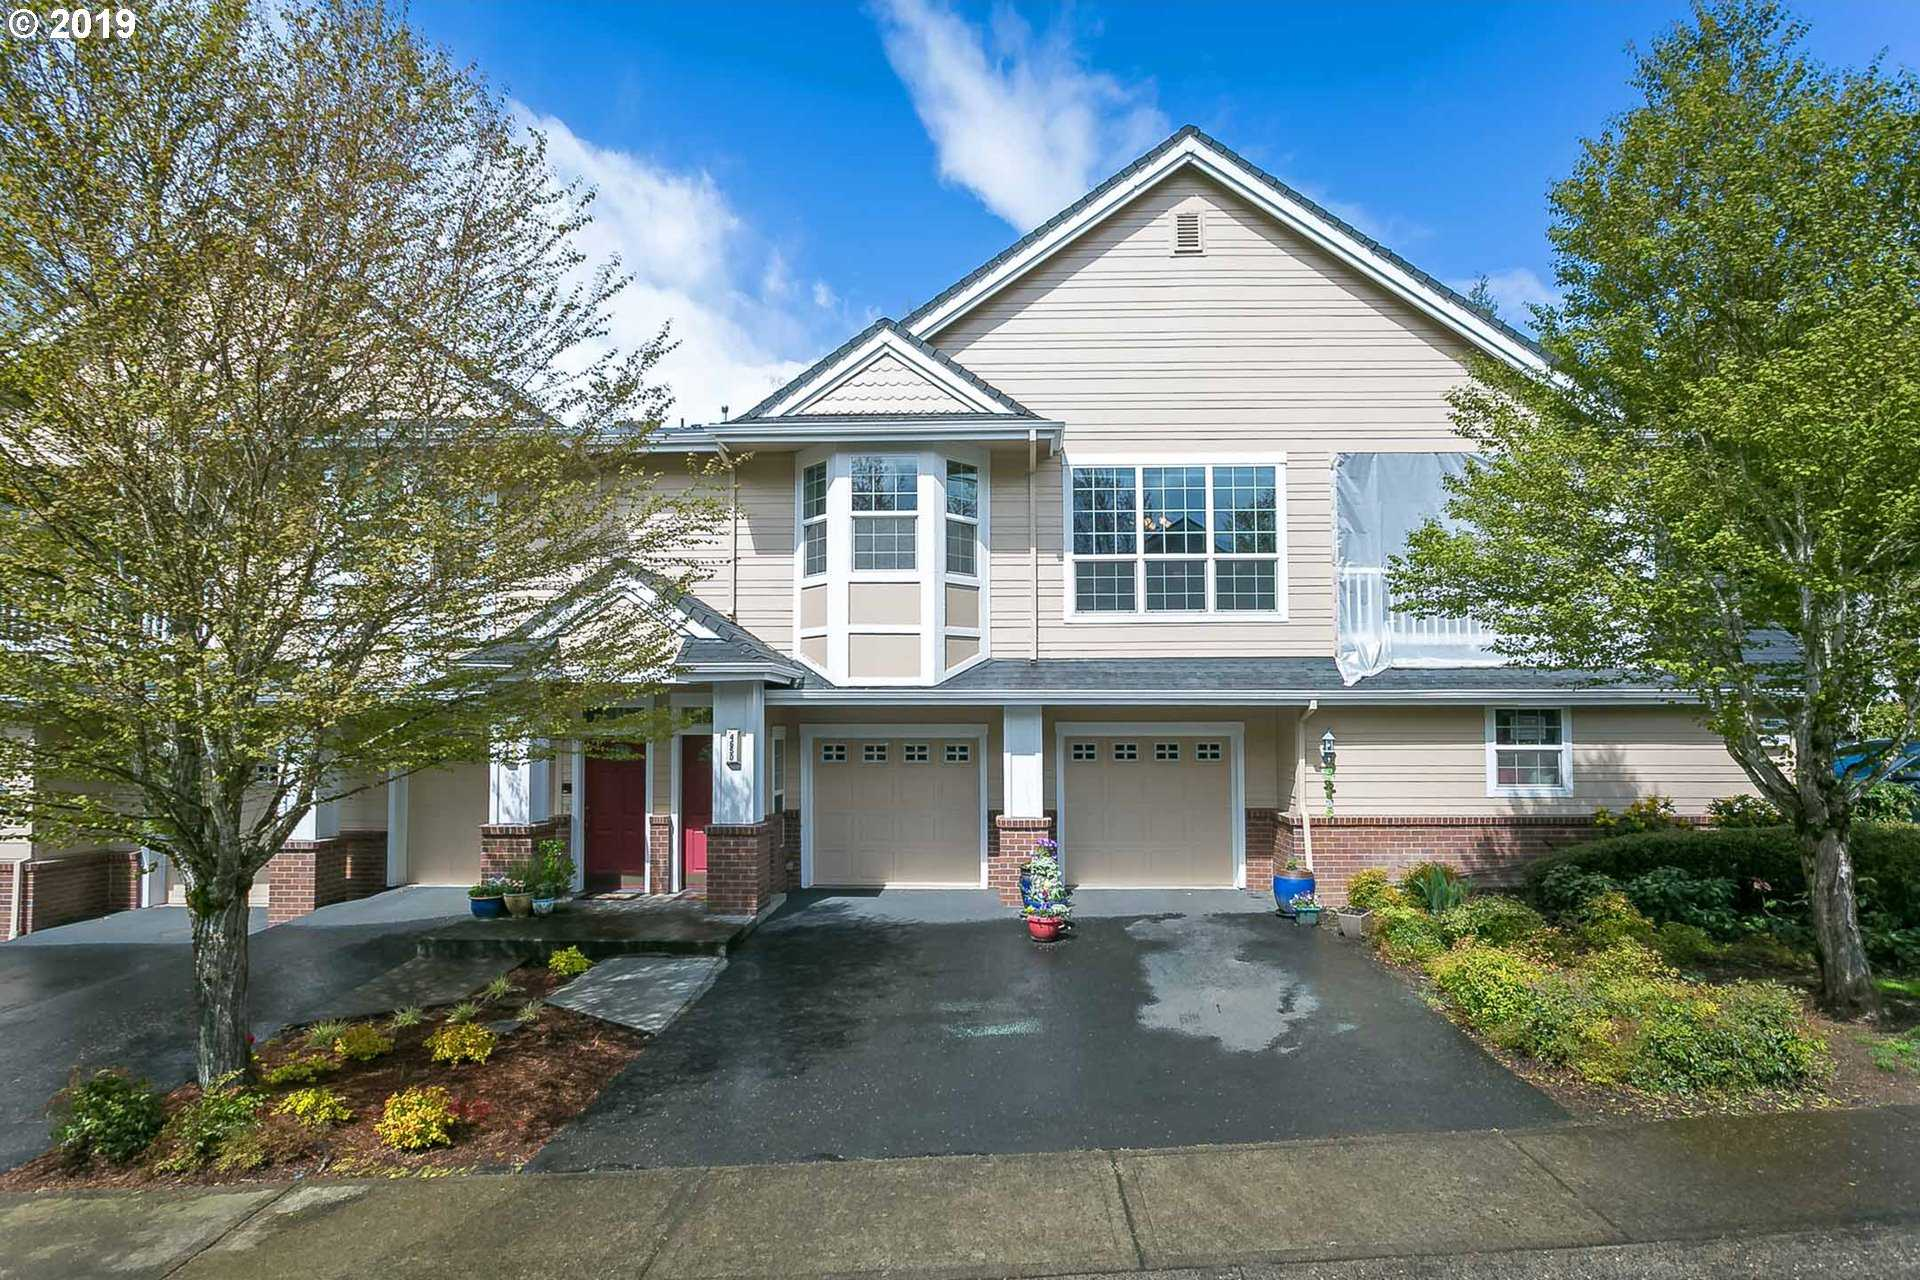 $279,900 - 2Br/2Ba -  for Sale in Summerlinn, West Linn